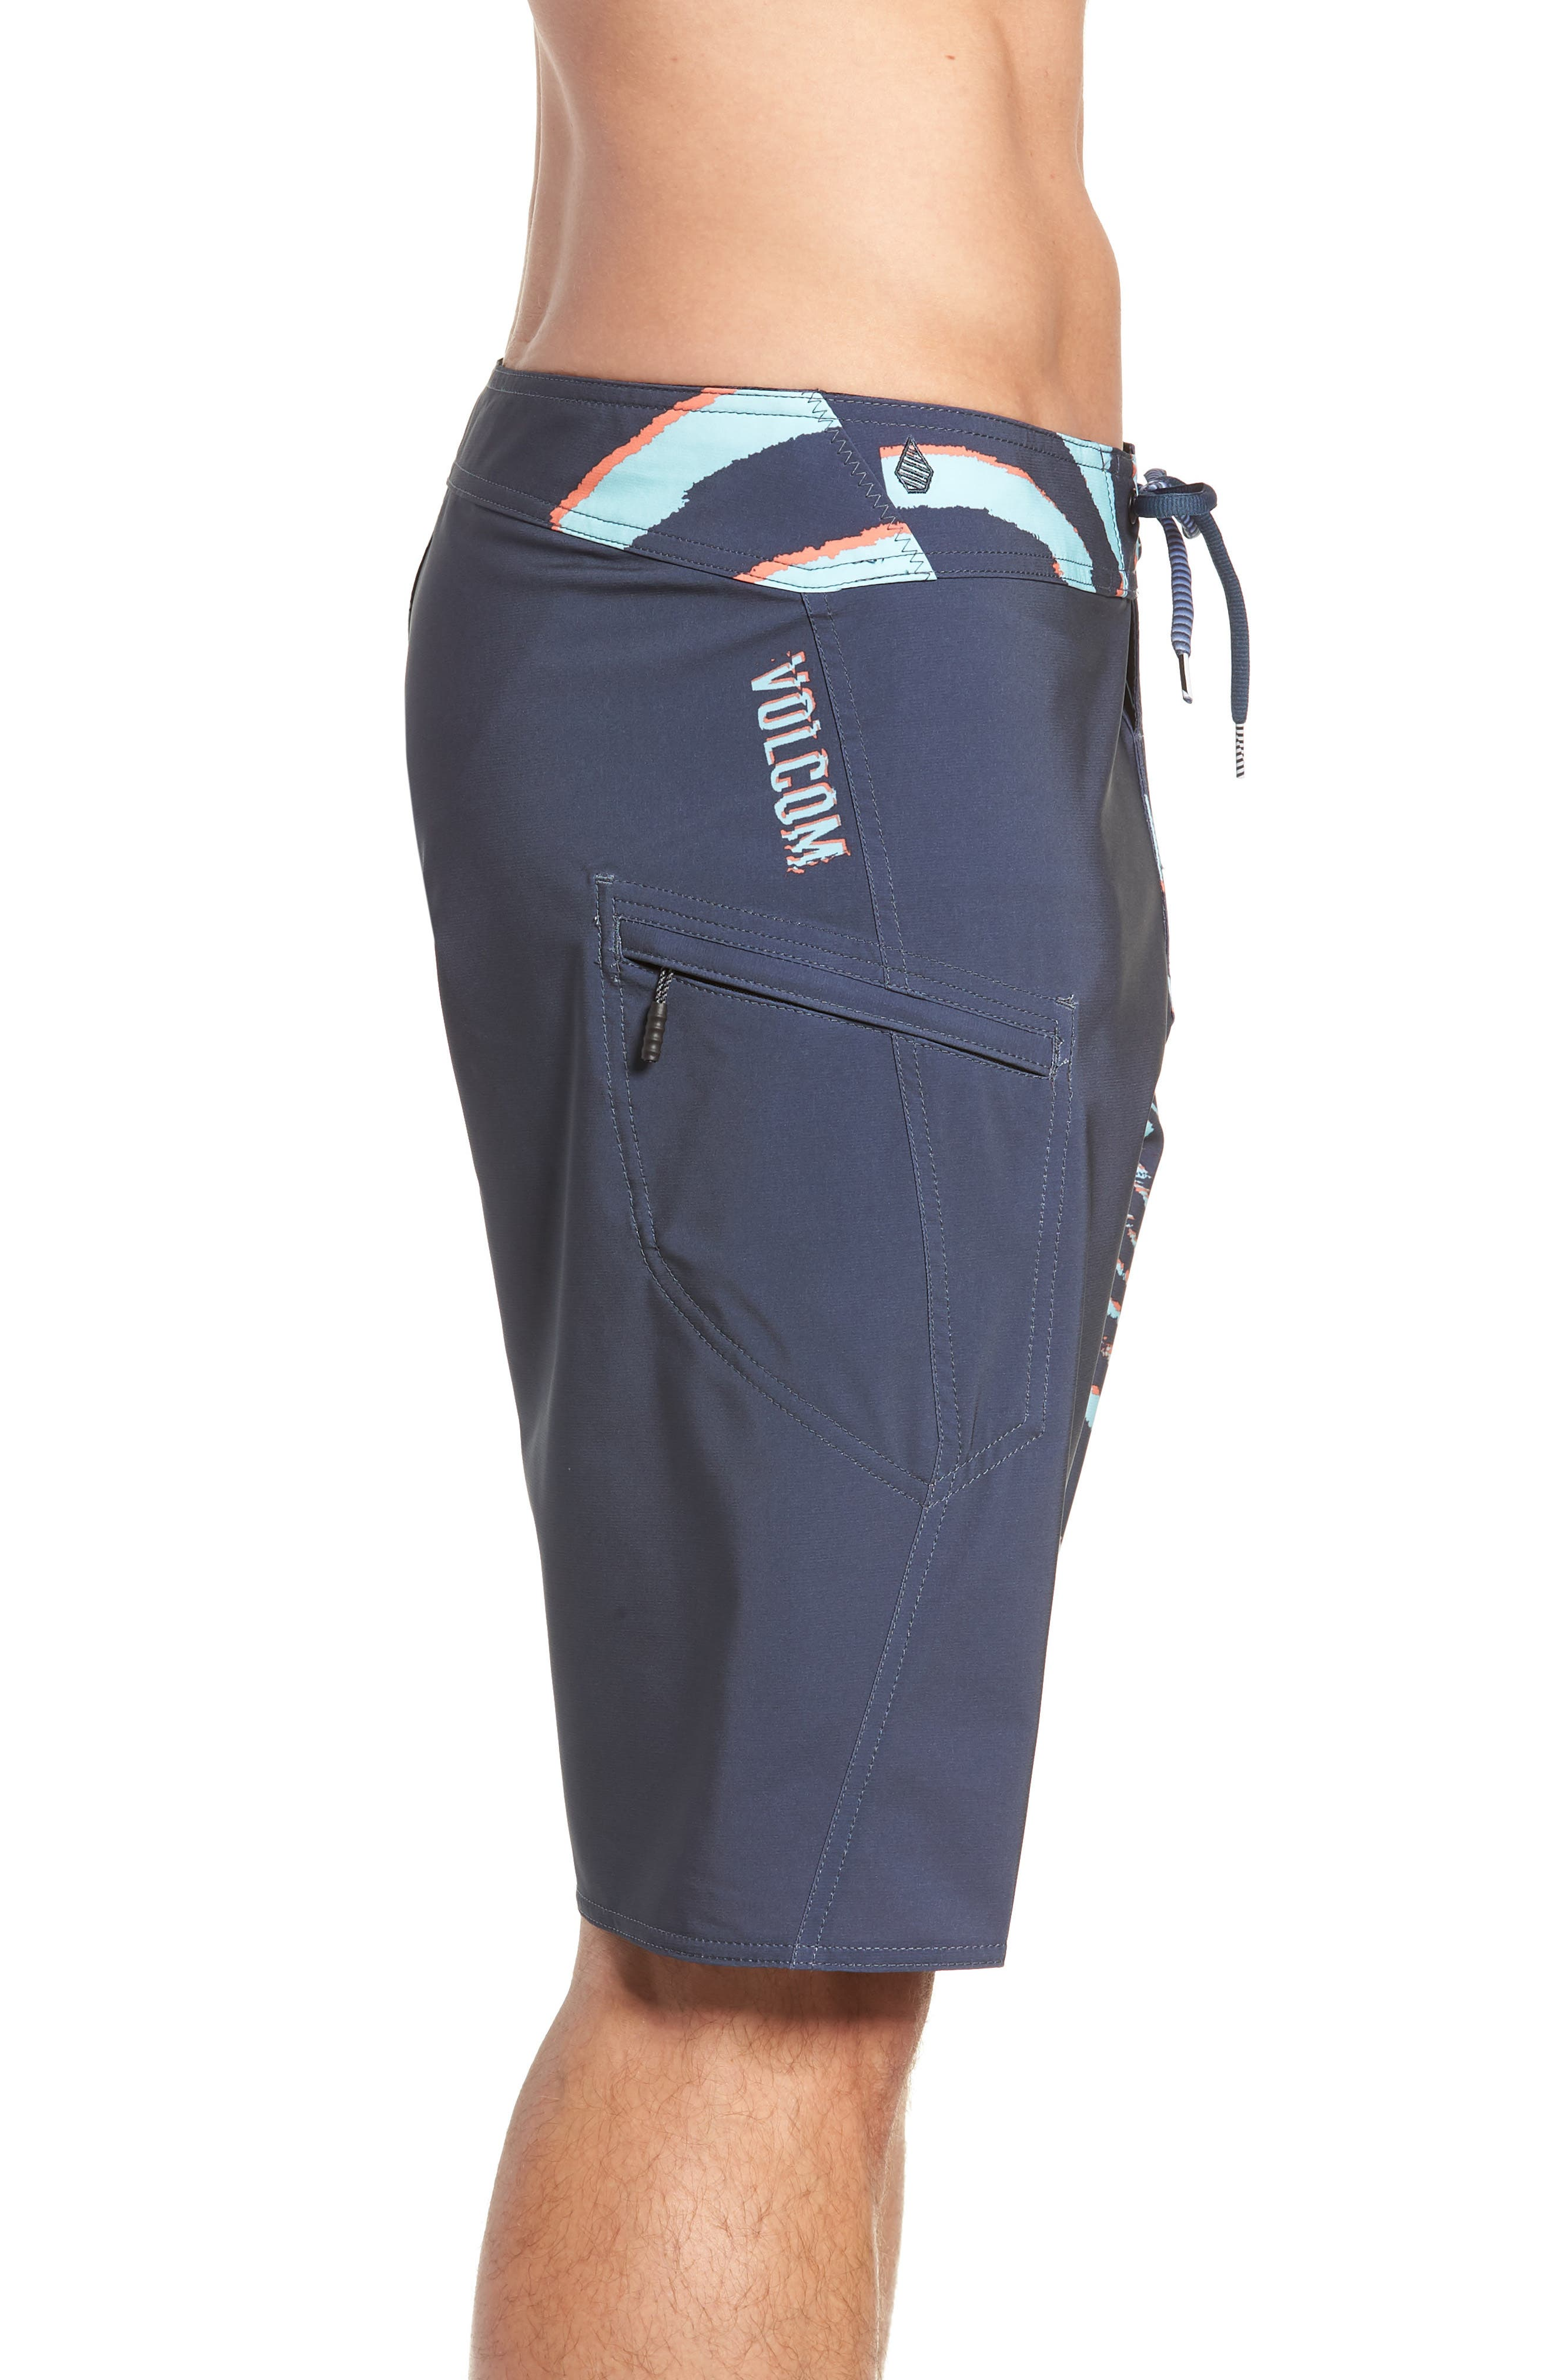 Lido Block Mod Board Shorts,                             Alternate thumbnail 3, color,                             MEDIUM BLUE